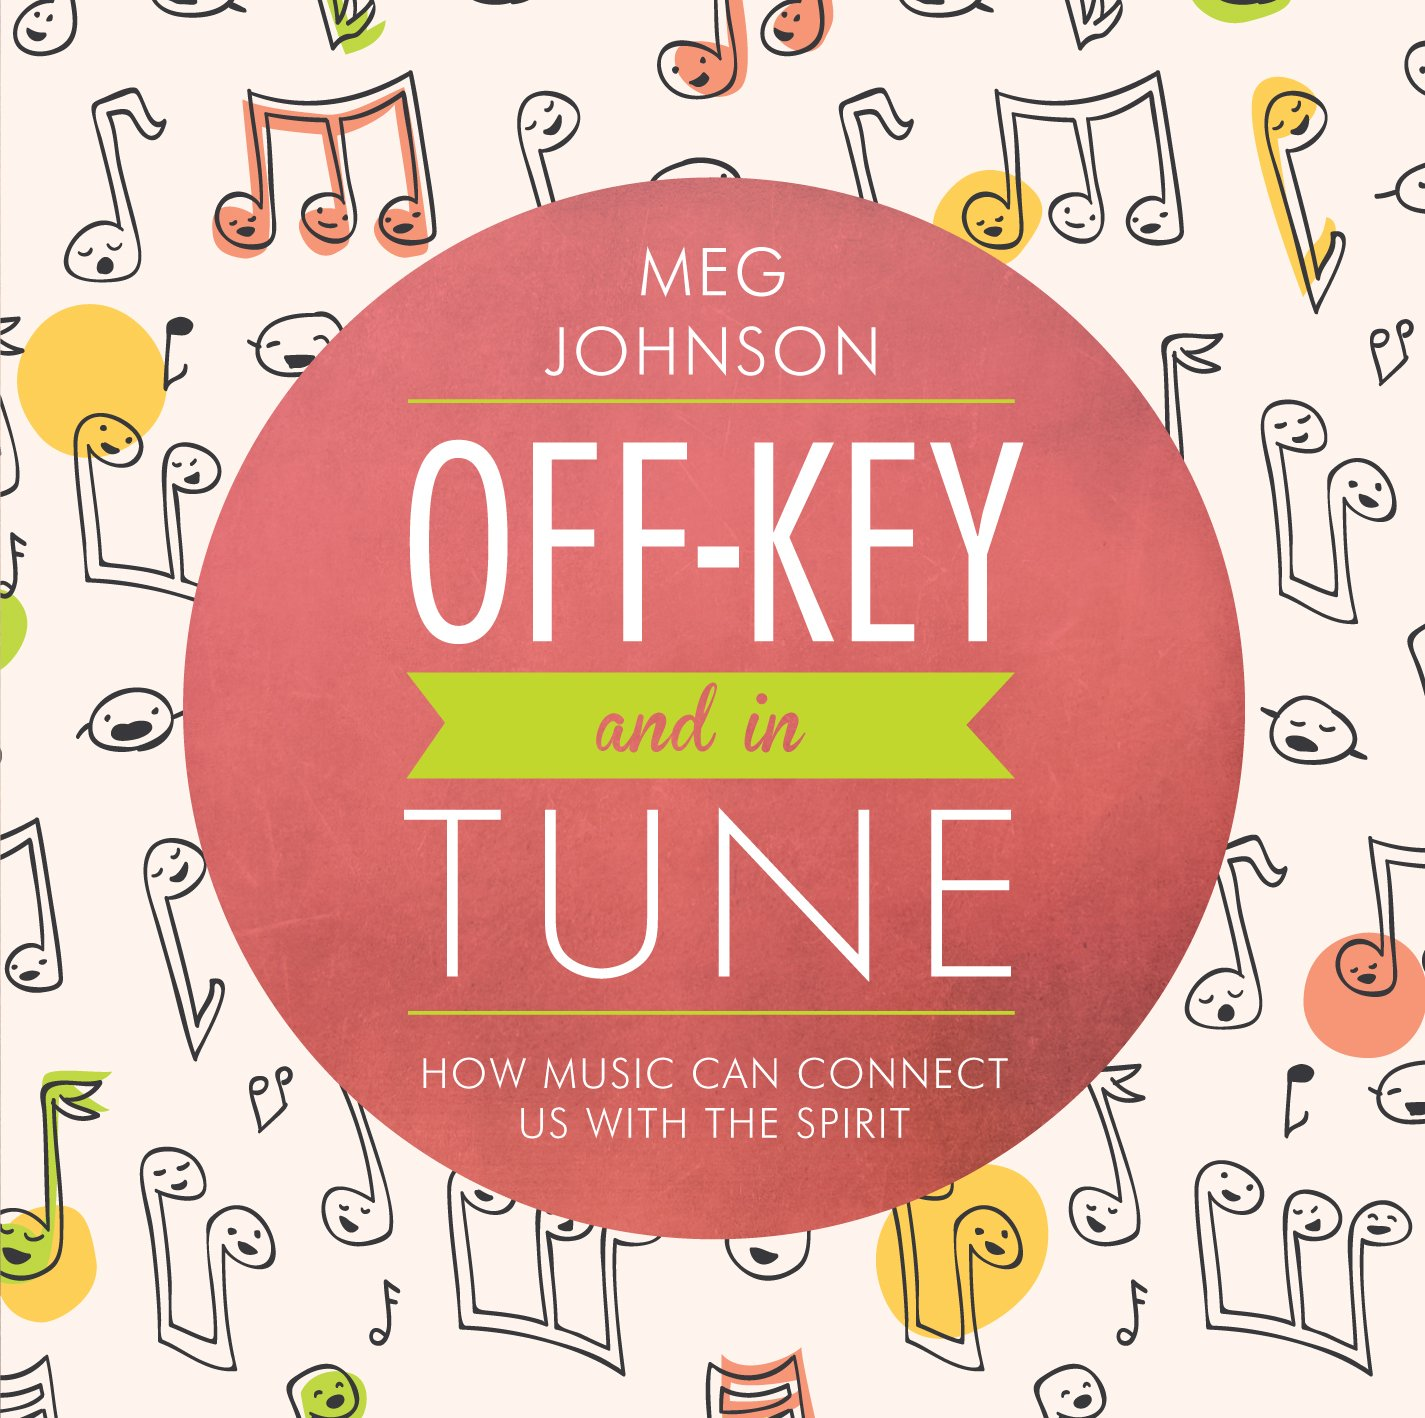 Off-Key and In Tune:How Music Can Connect, Talk on CDUs with the Spirit